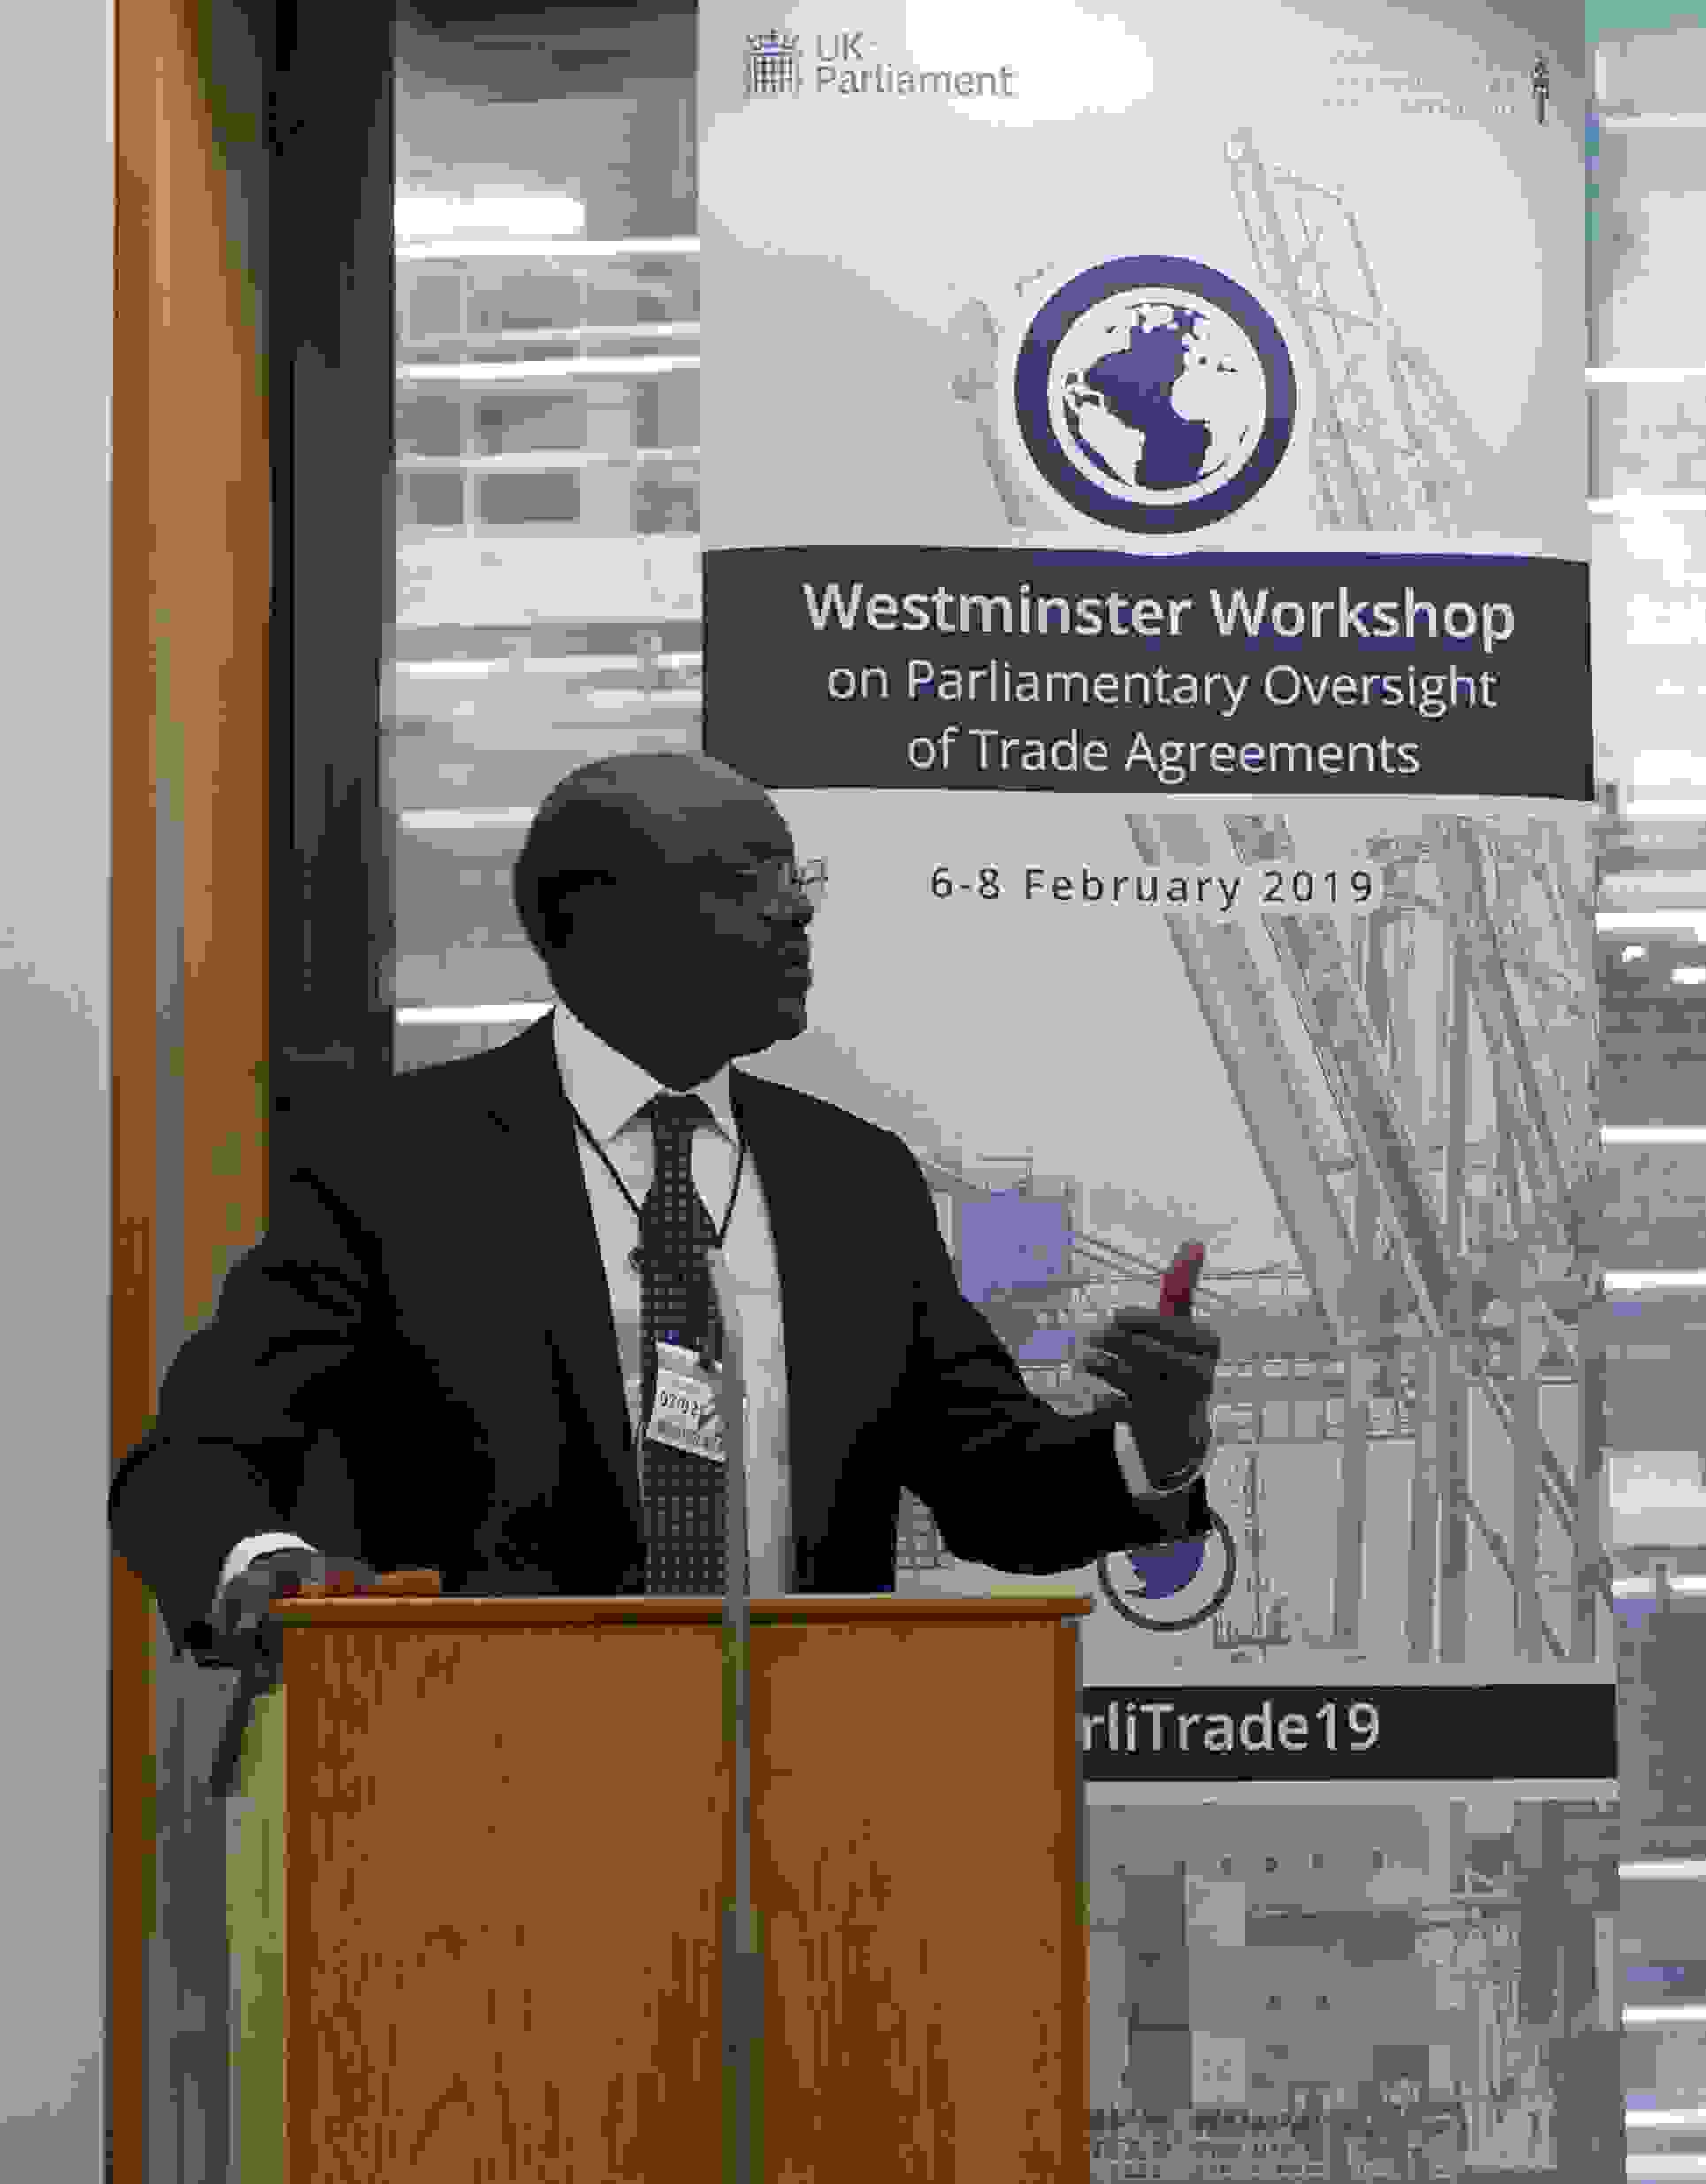 Westminster Workshop on Parliamentary Oversight of Trade Agreements listing image